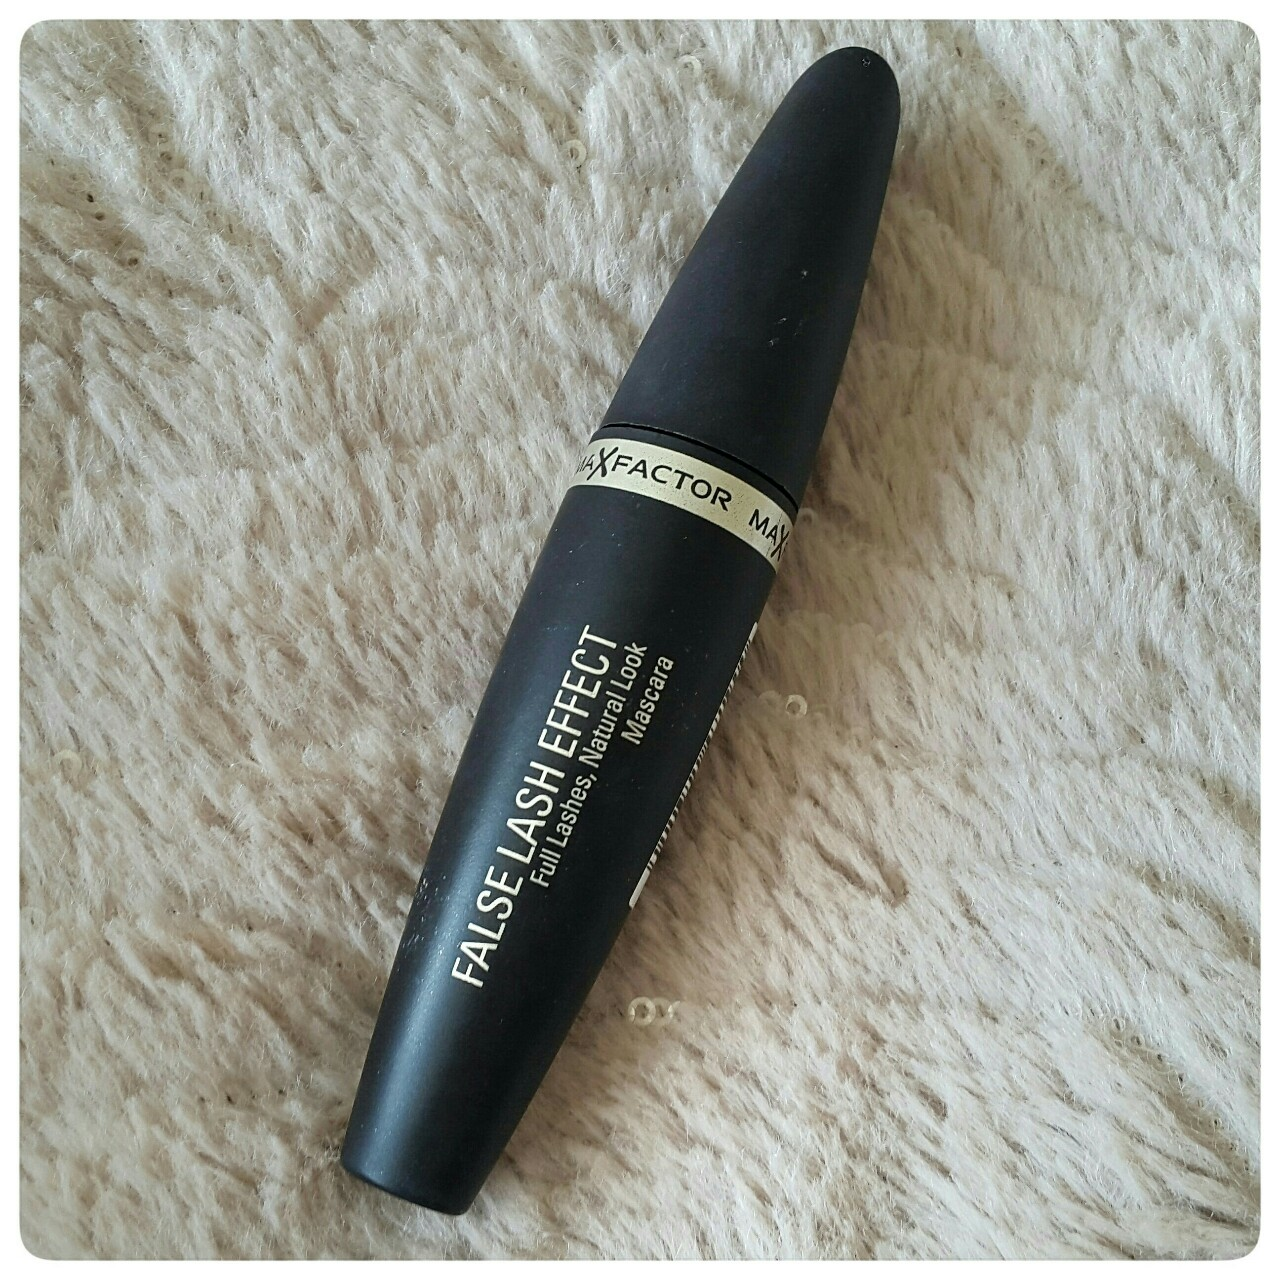 d66e66d3098 I am so proud and thankful that I was lucky enough for Beauty at Tesco send  me this mascara as part as their Be Inspired beauty ...